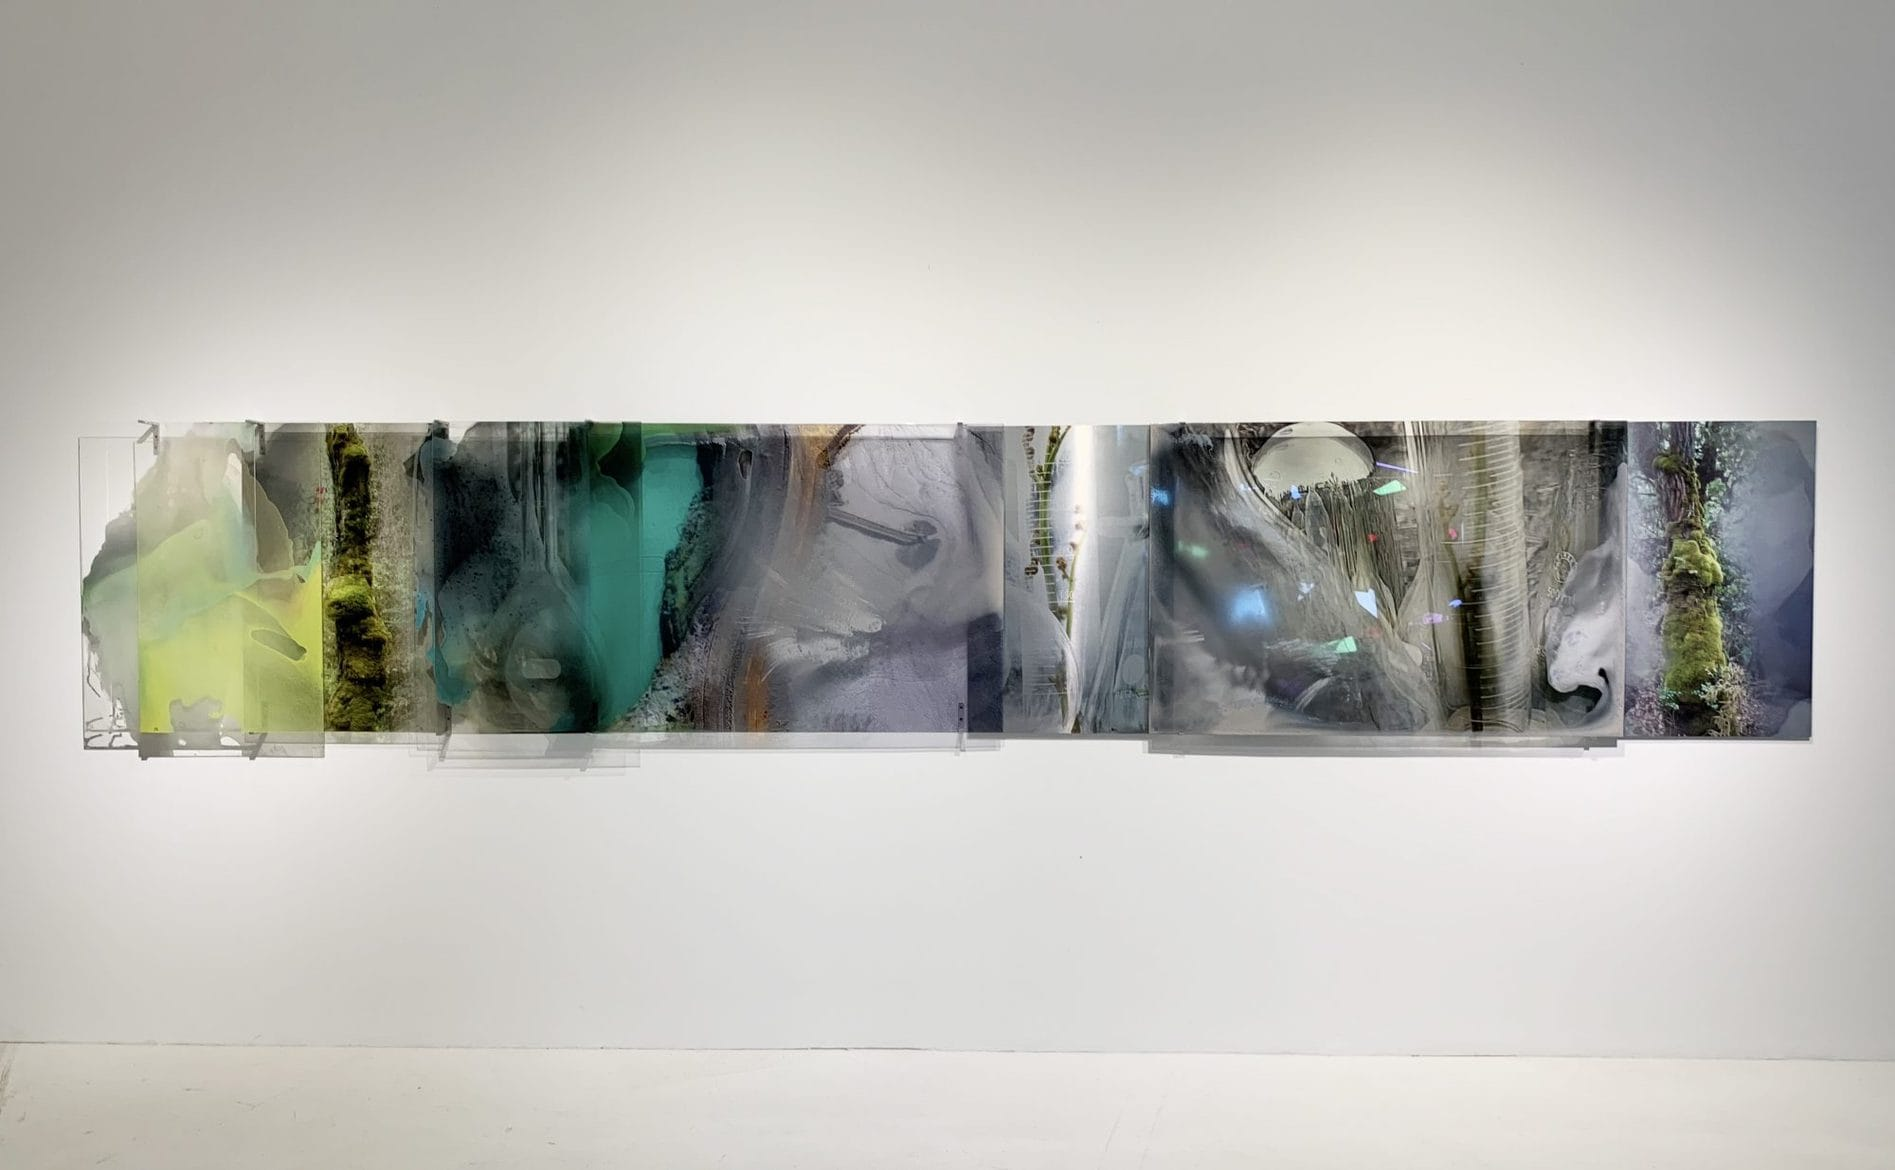 'Sacred green chlorophyll collapse series', 2017-2019, Dye sublimation archival print onto Chromaluxe aluminium and C type silver halide print on clear polyester with paints and pigments, ca. 100 x 620 cm